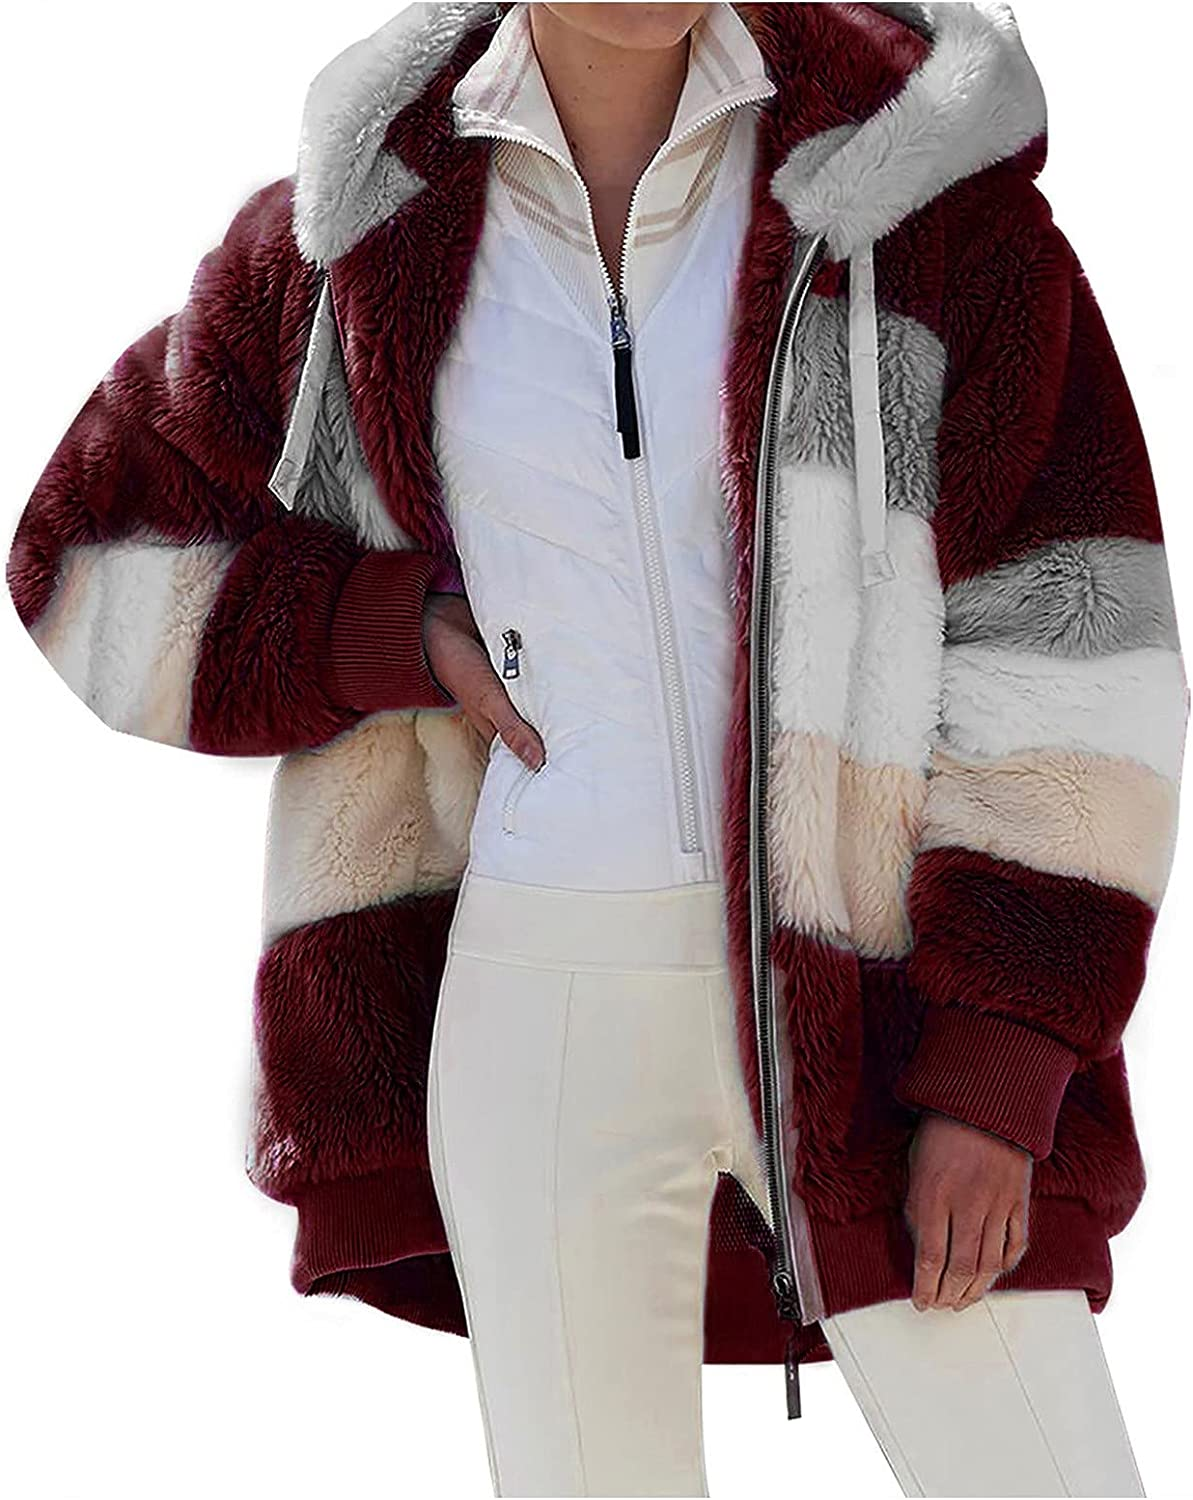 Fleece OFFicial shop Coat for Women Casual Trendy Special price for a limited time Hoodies Color Winter Novelty